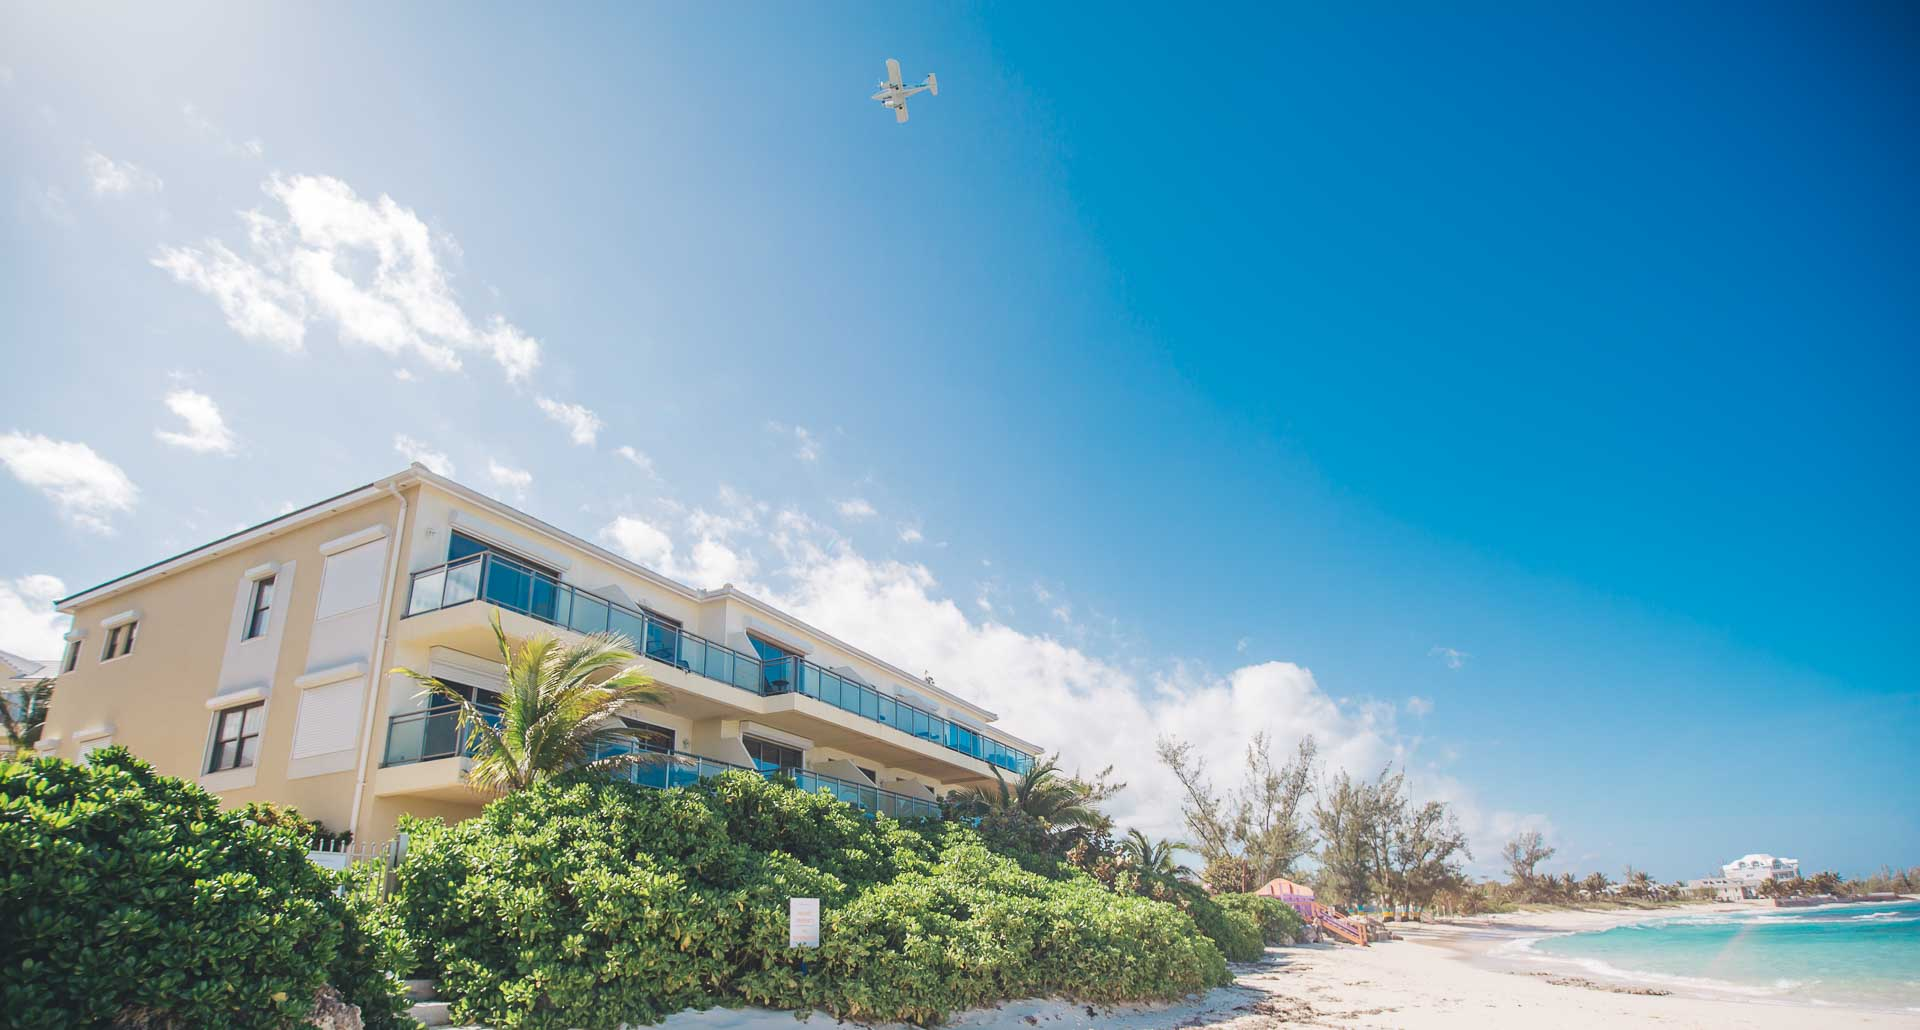 Co-op / Condo for Sale at Beachfront Penthouse in Columbus Cove - MLS 32682 Love Beach, Nassau And Paradise Island, Bahamas